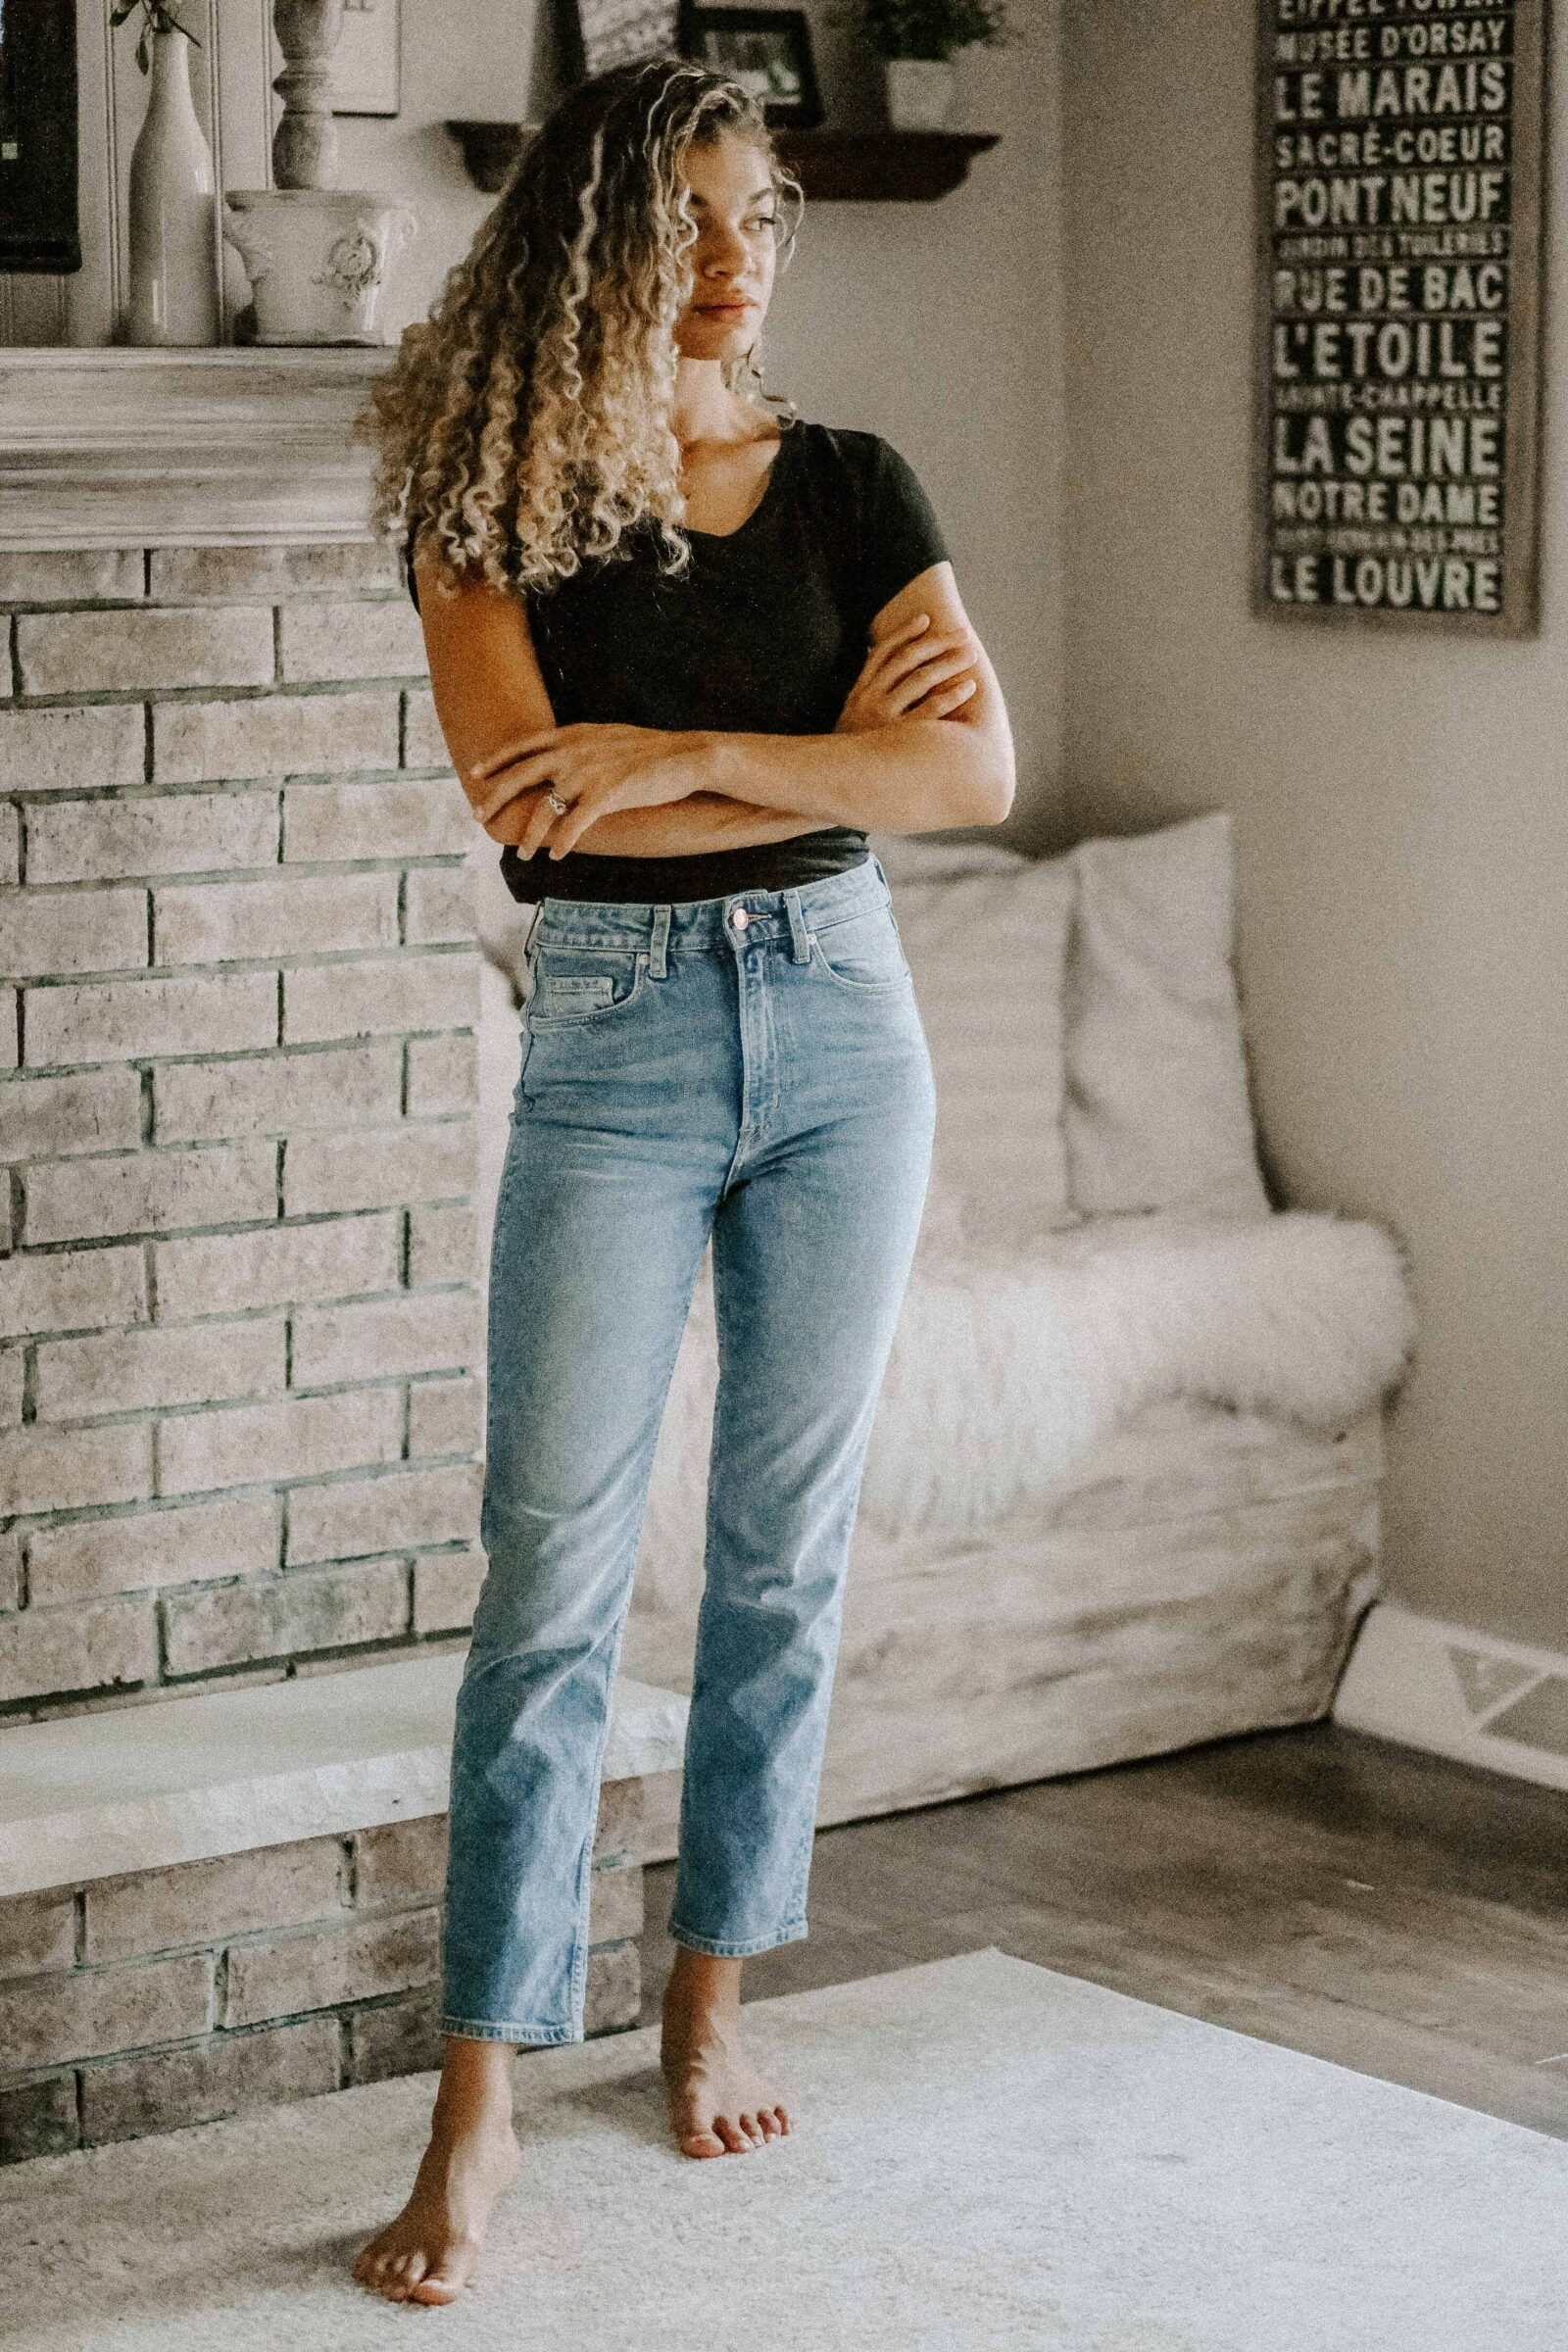 tee and jeans outfits